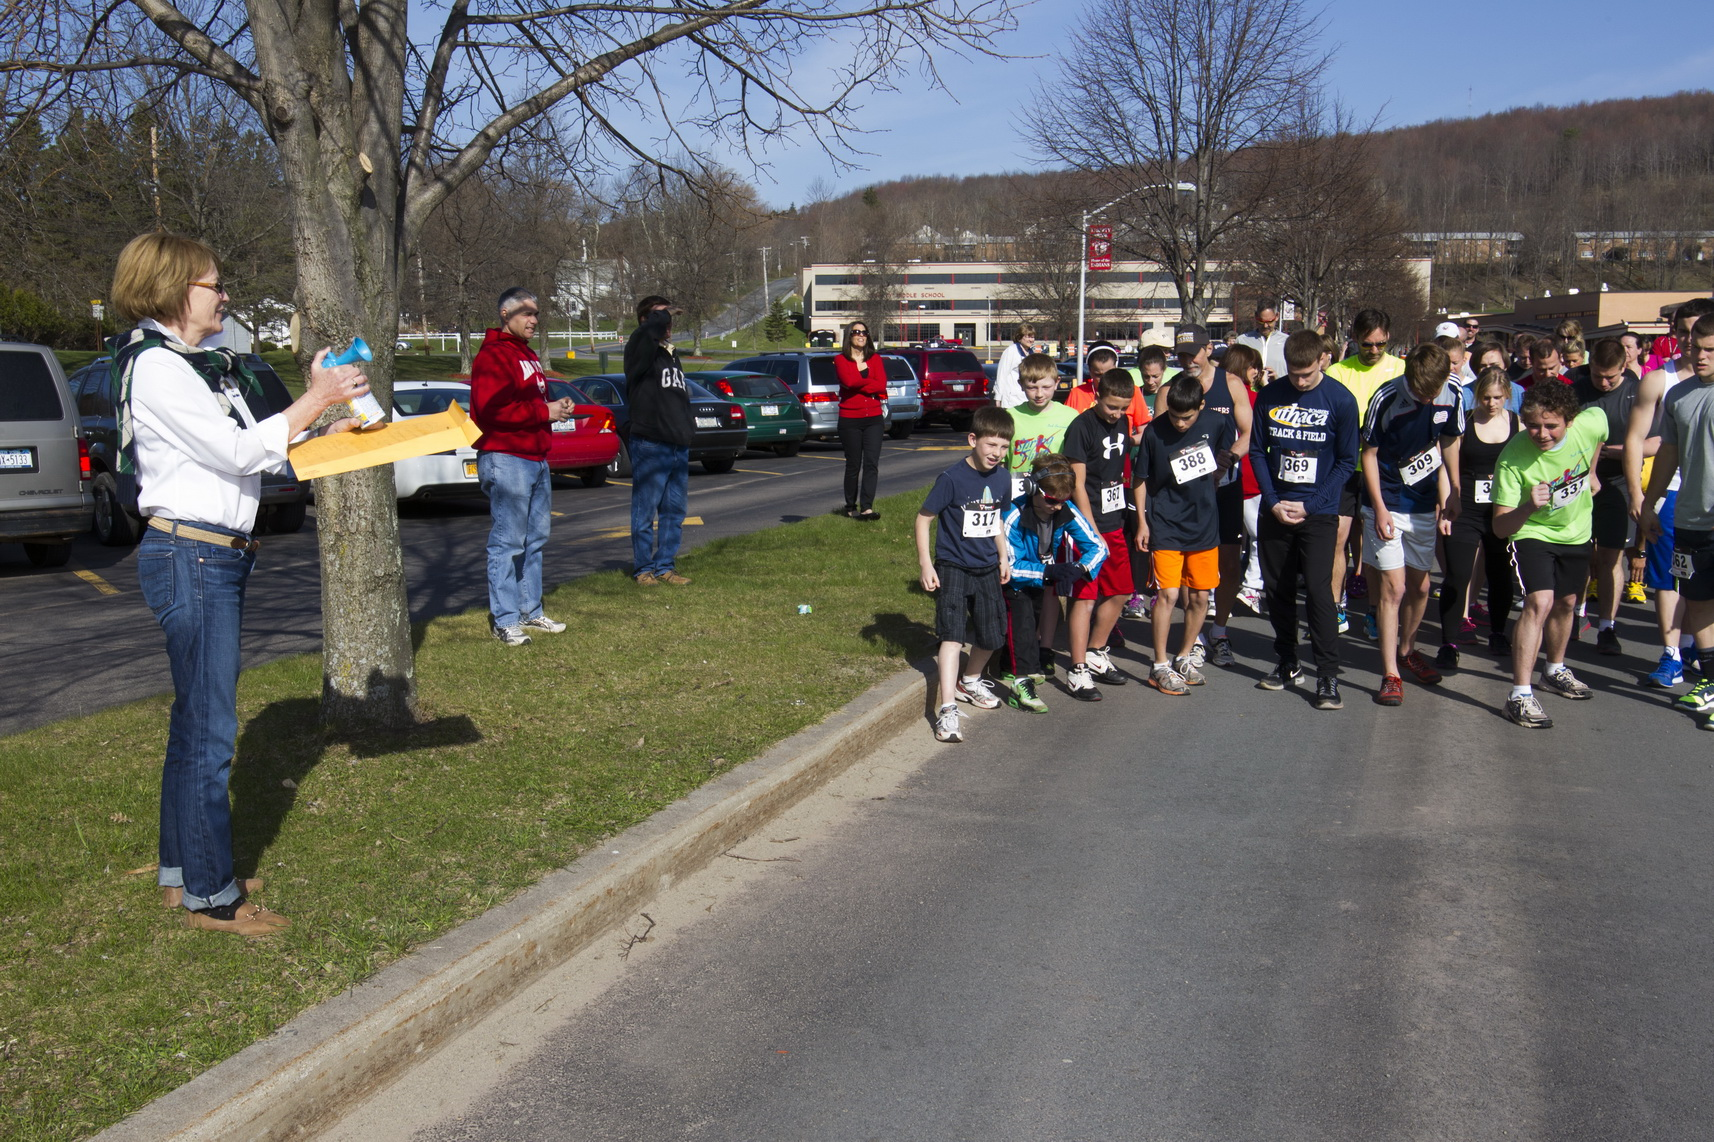 For the second year in a row, Assemblywoman Aileen Gunther sounded the start of the Liberty High School Annual Spring Fling 5K.